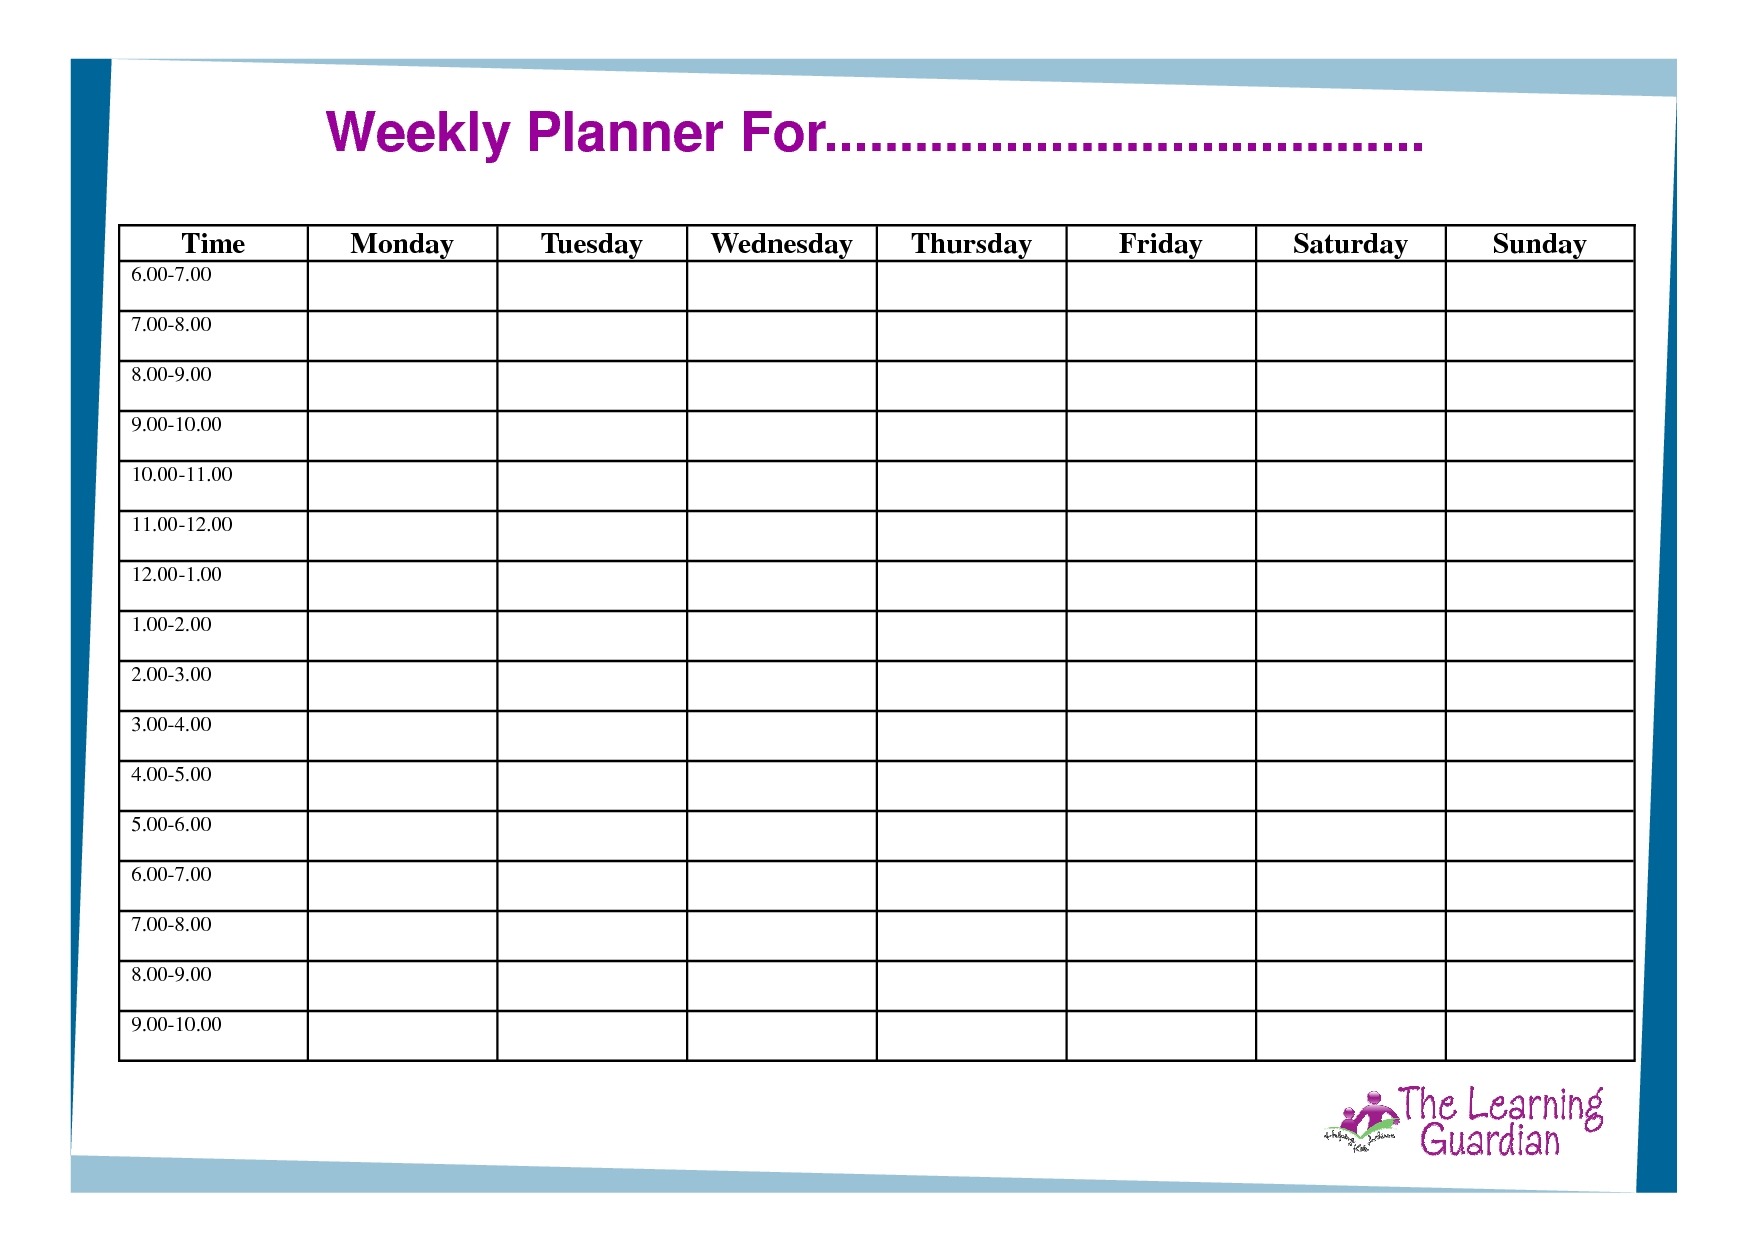 Weekly Calendar Template Monday To Friday | Calendar Calendar Template Monday To Friday